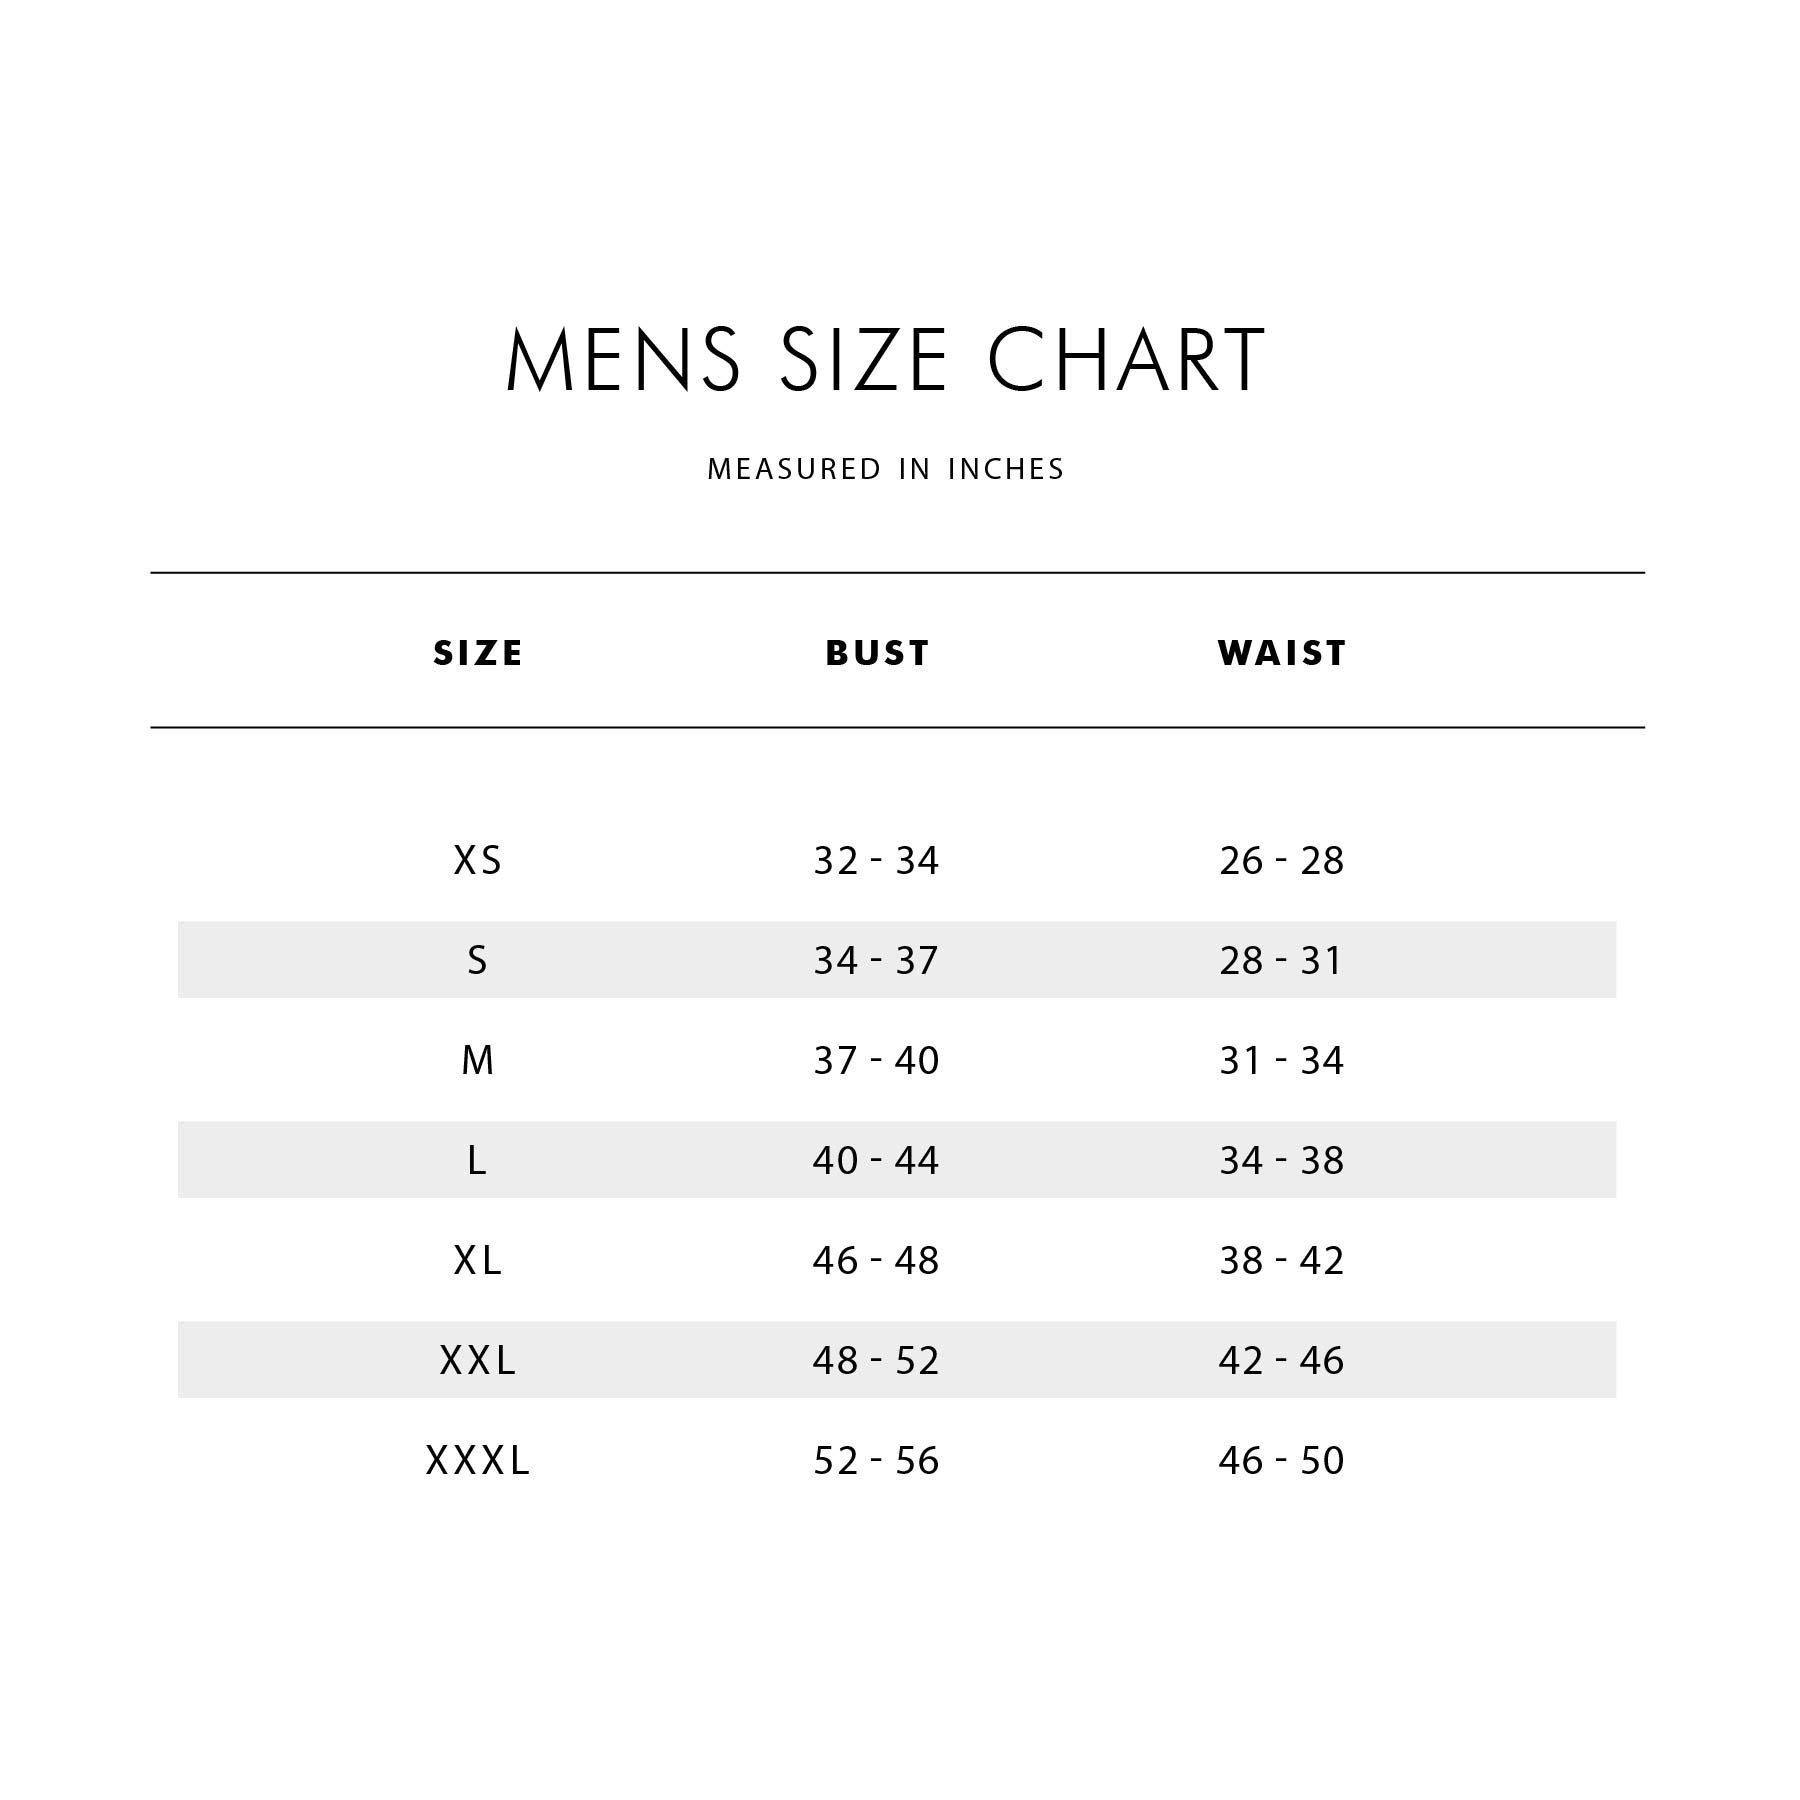 ab158dcacda Kids Loose Fit Size Chart Kids Tight Fit Size Chart Infant   Toddler Size  Chart How to Measure Guide